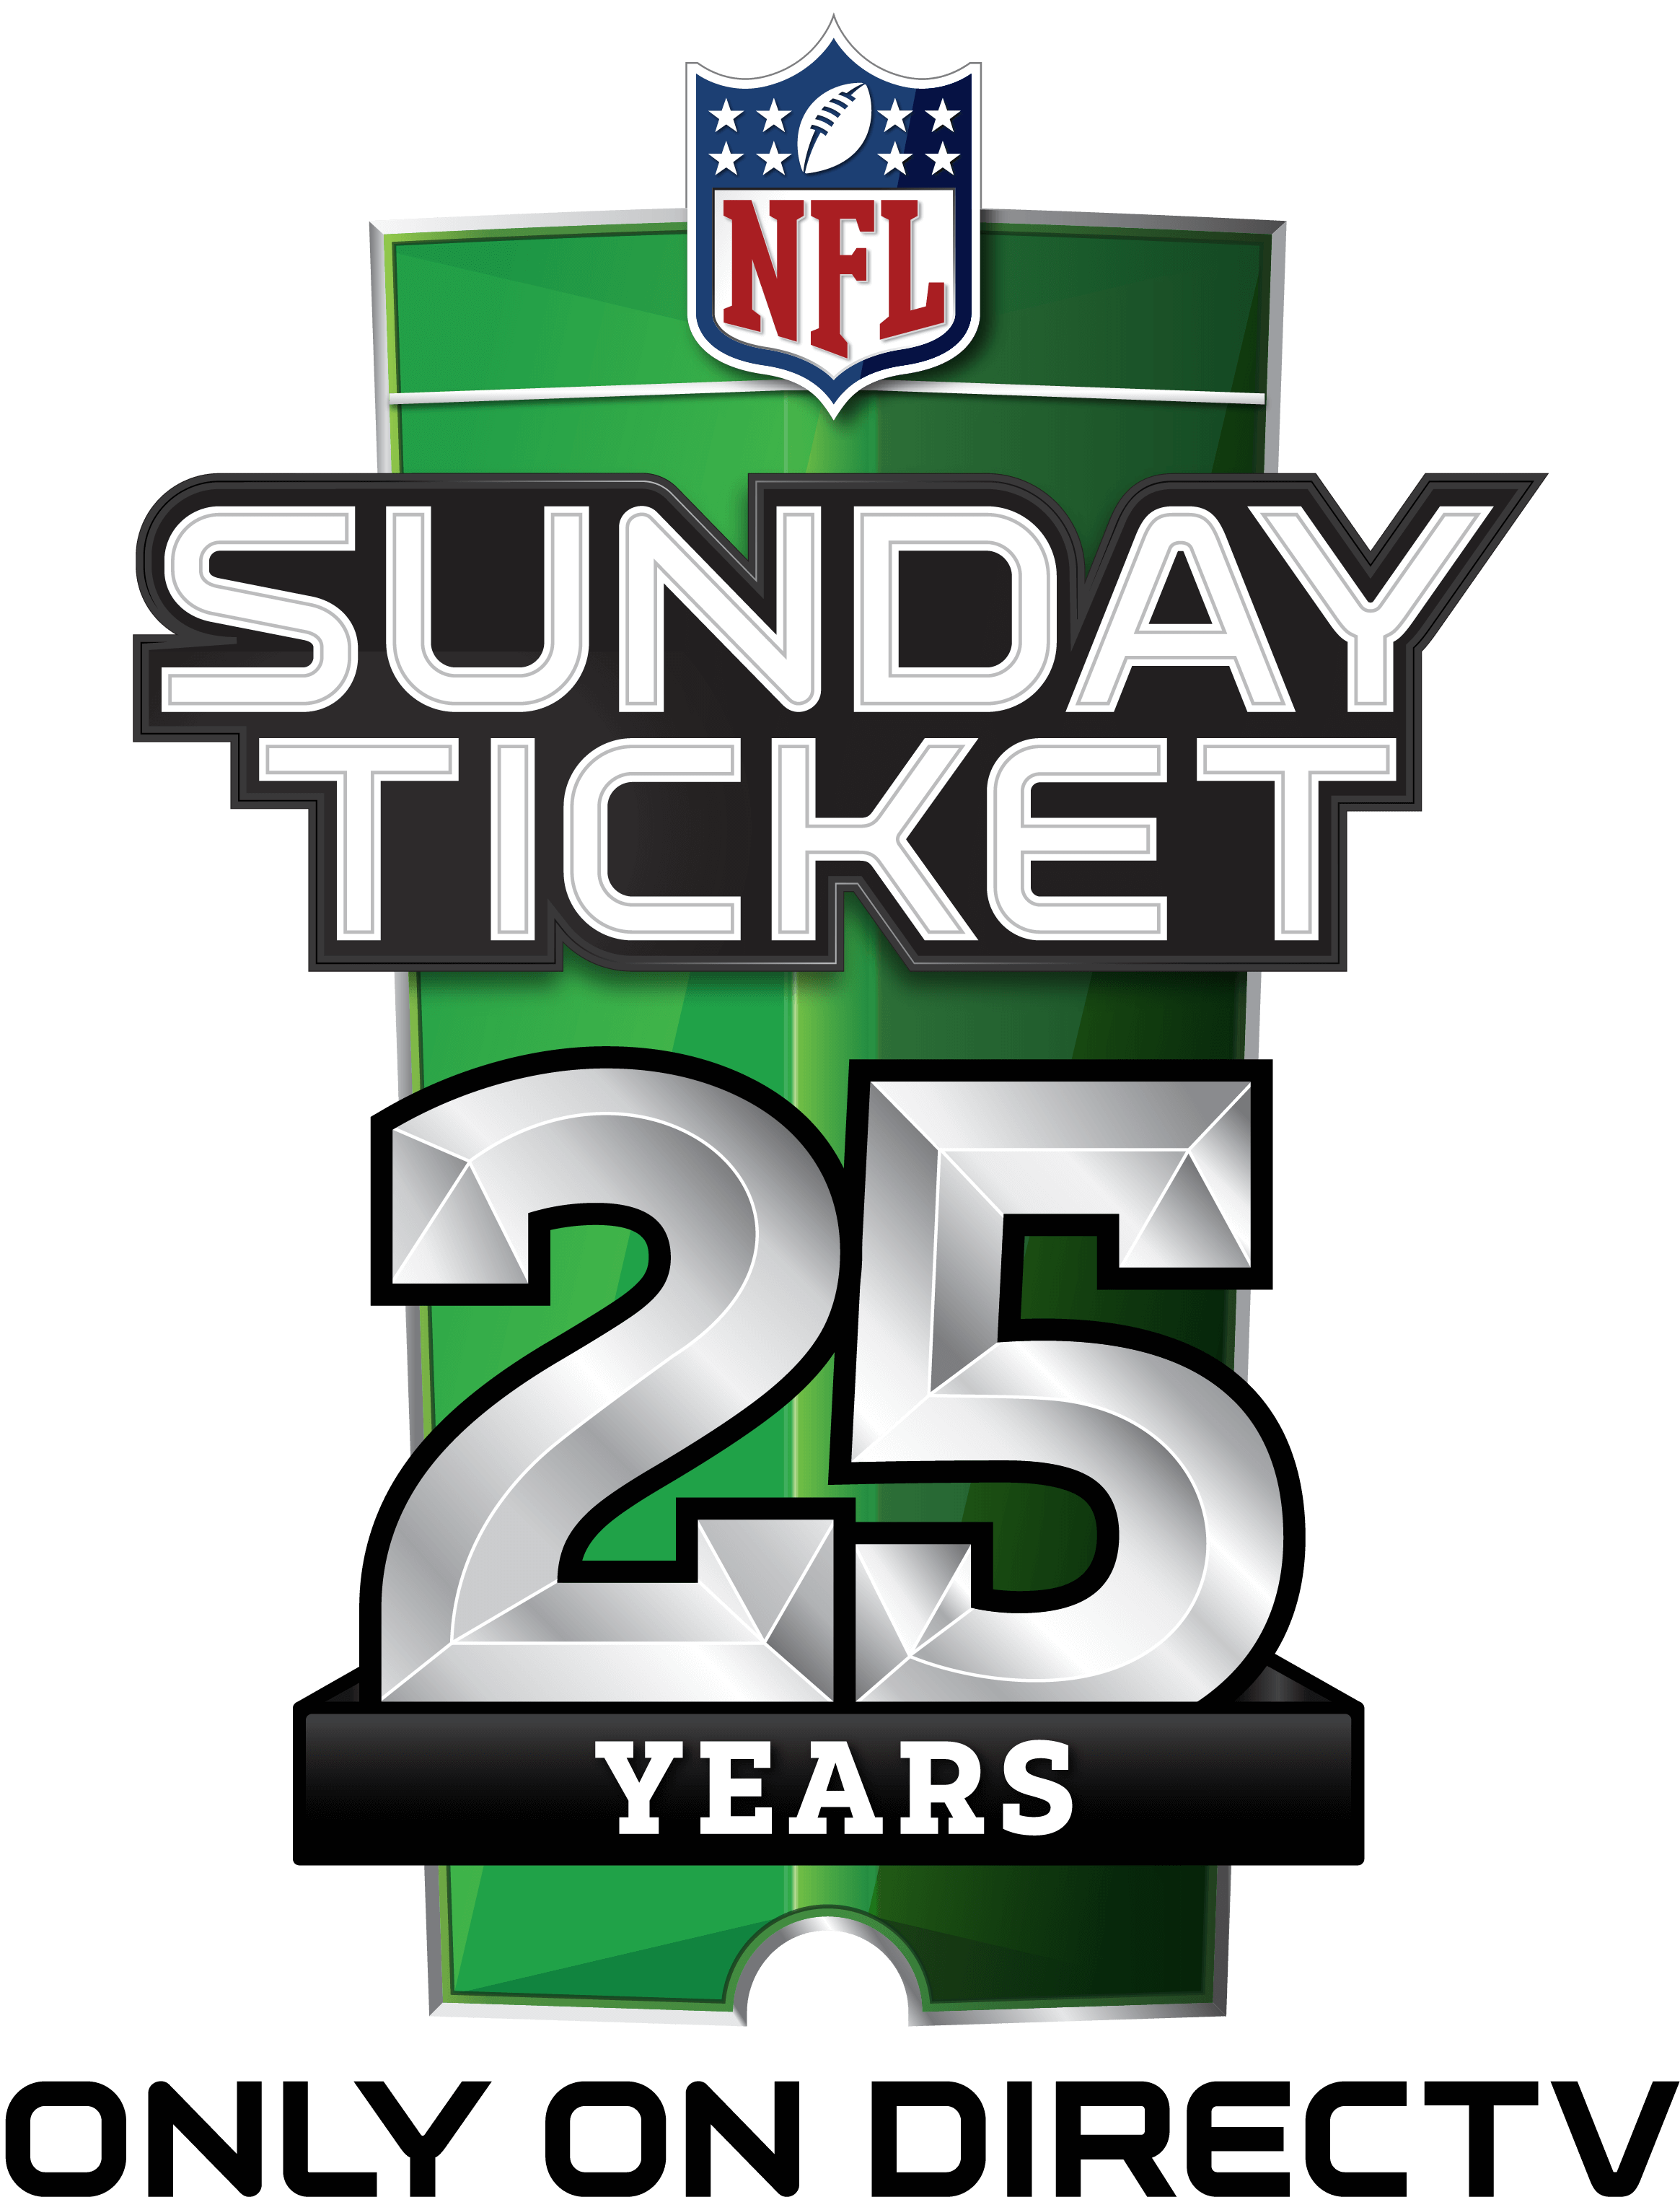 Nfl Sunday Ticket Nfl Sunday Ticket Sunday Ticket Tv Offers